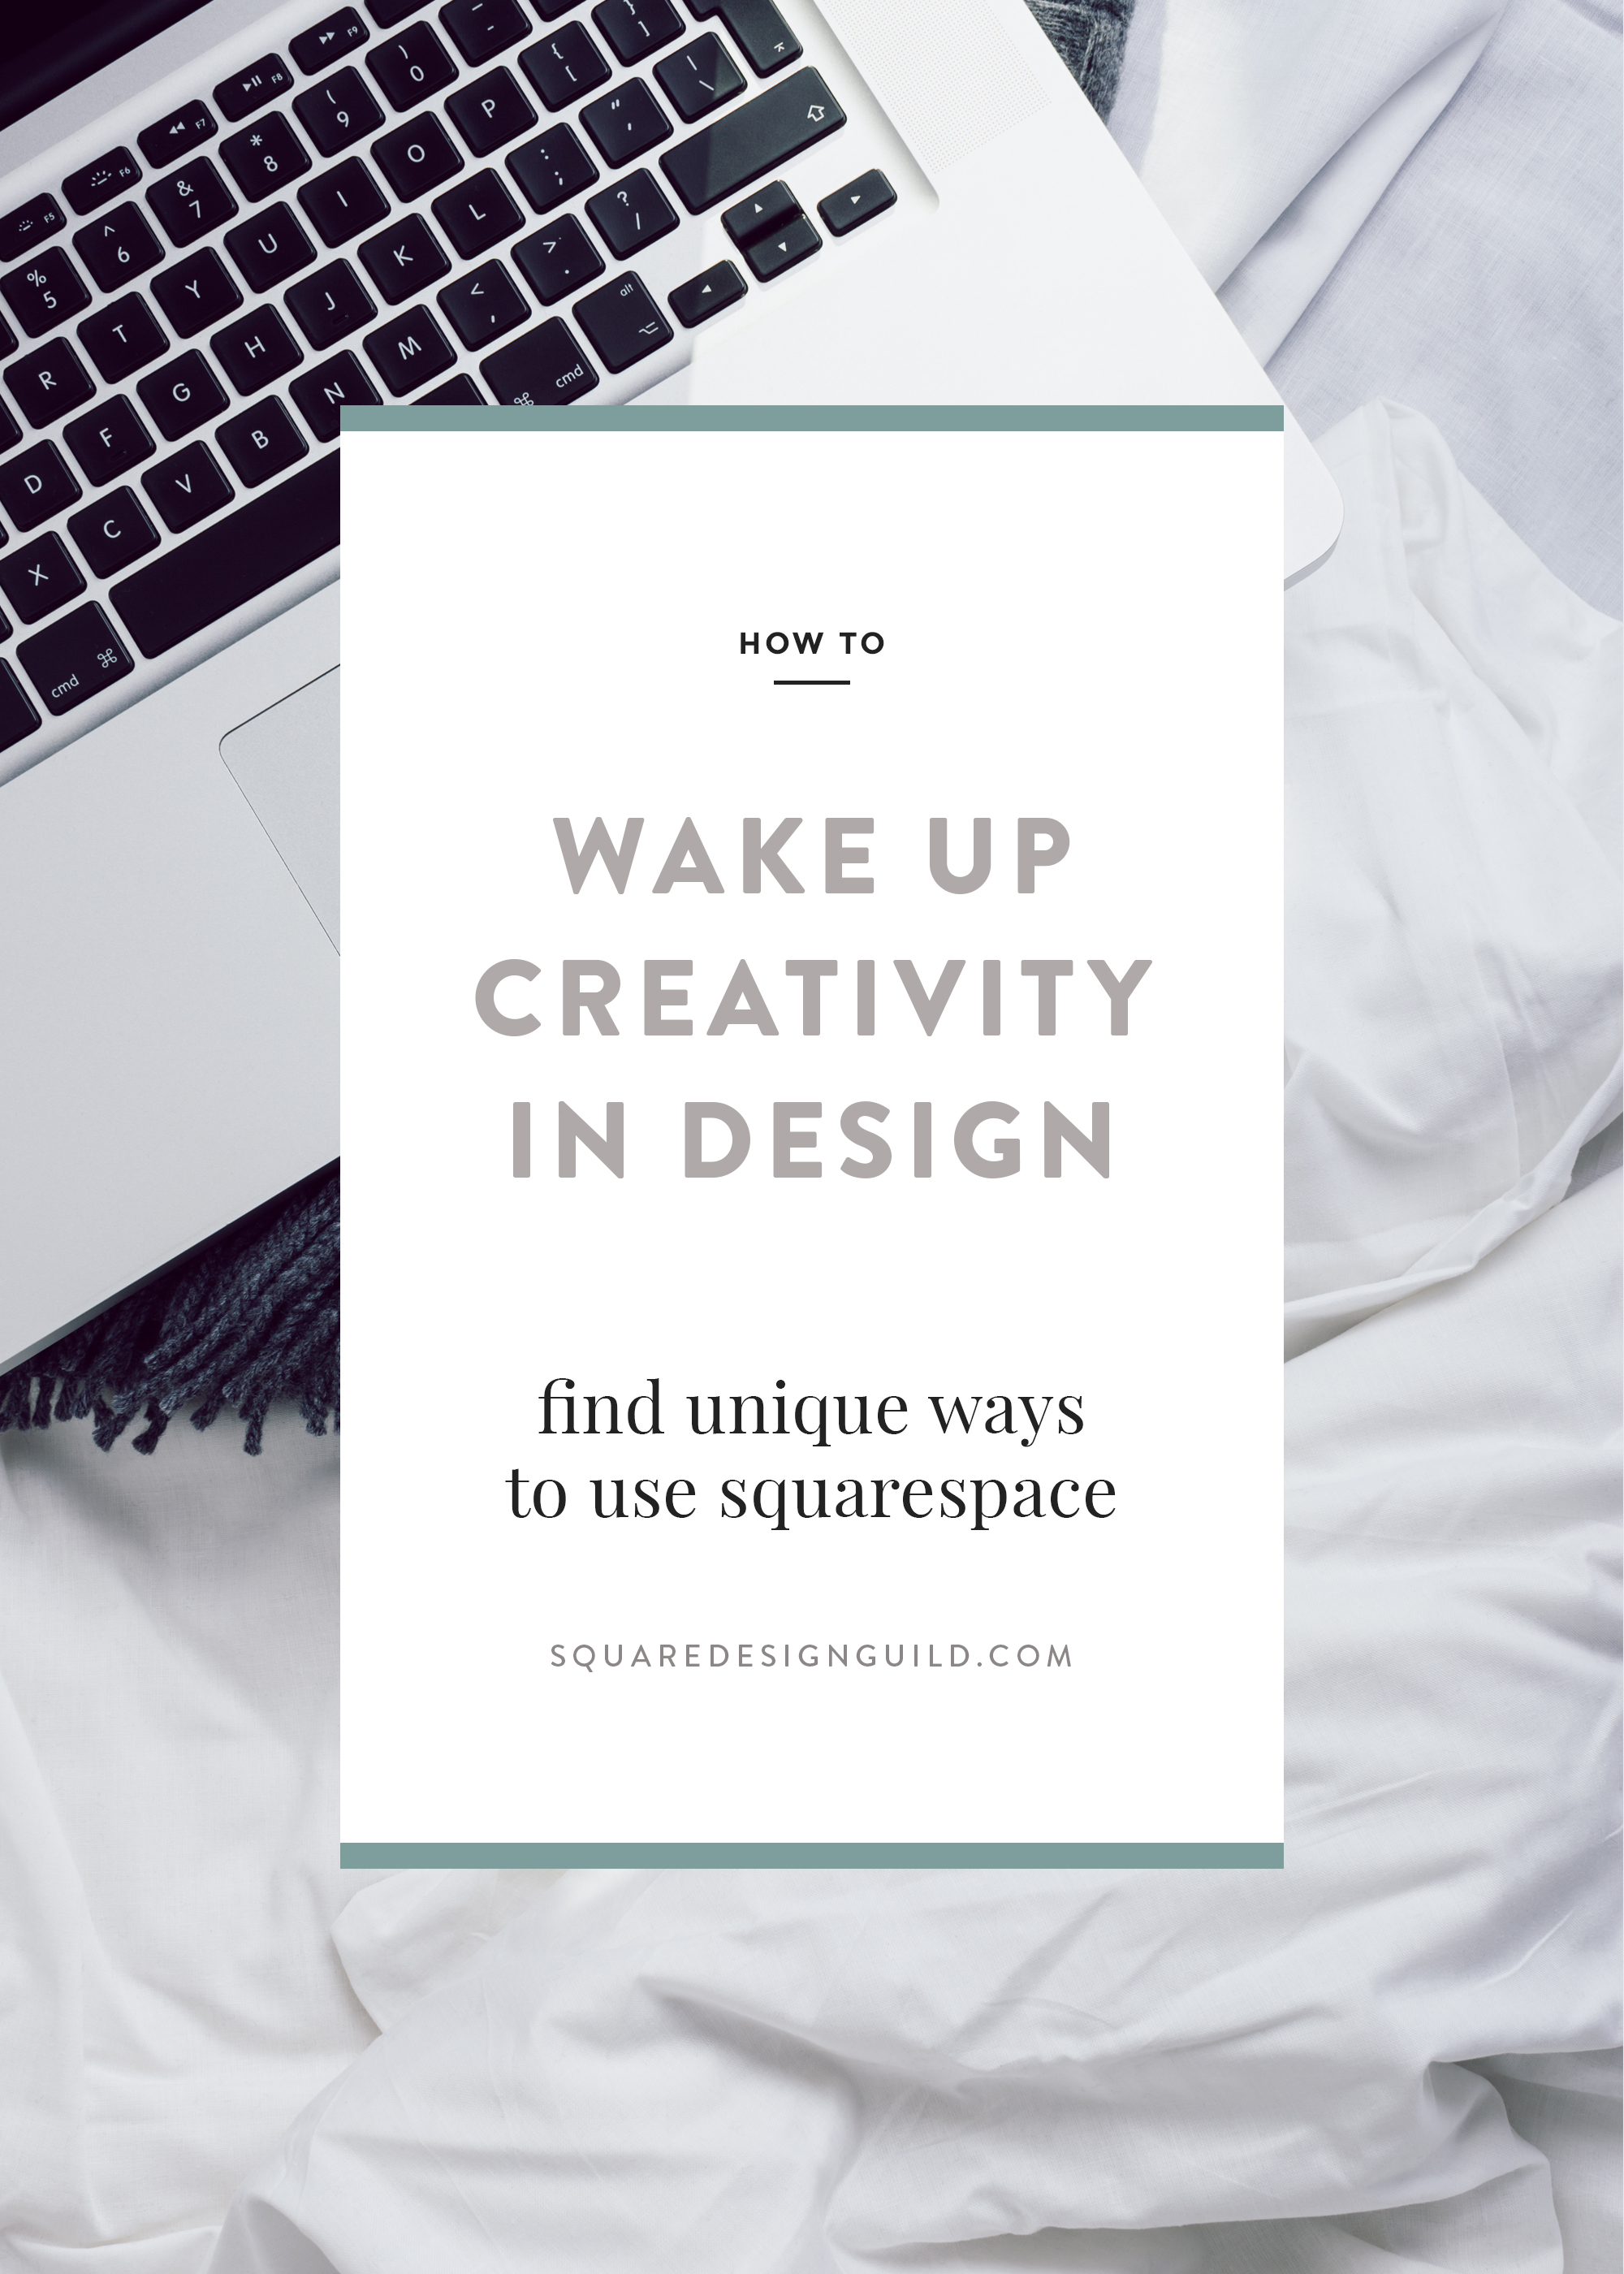 How To Wake Up Creativity in Design   Unique Ways to Use Squarespace   Squarespace Design Guild